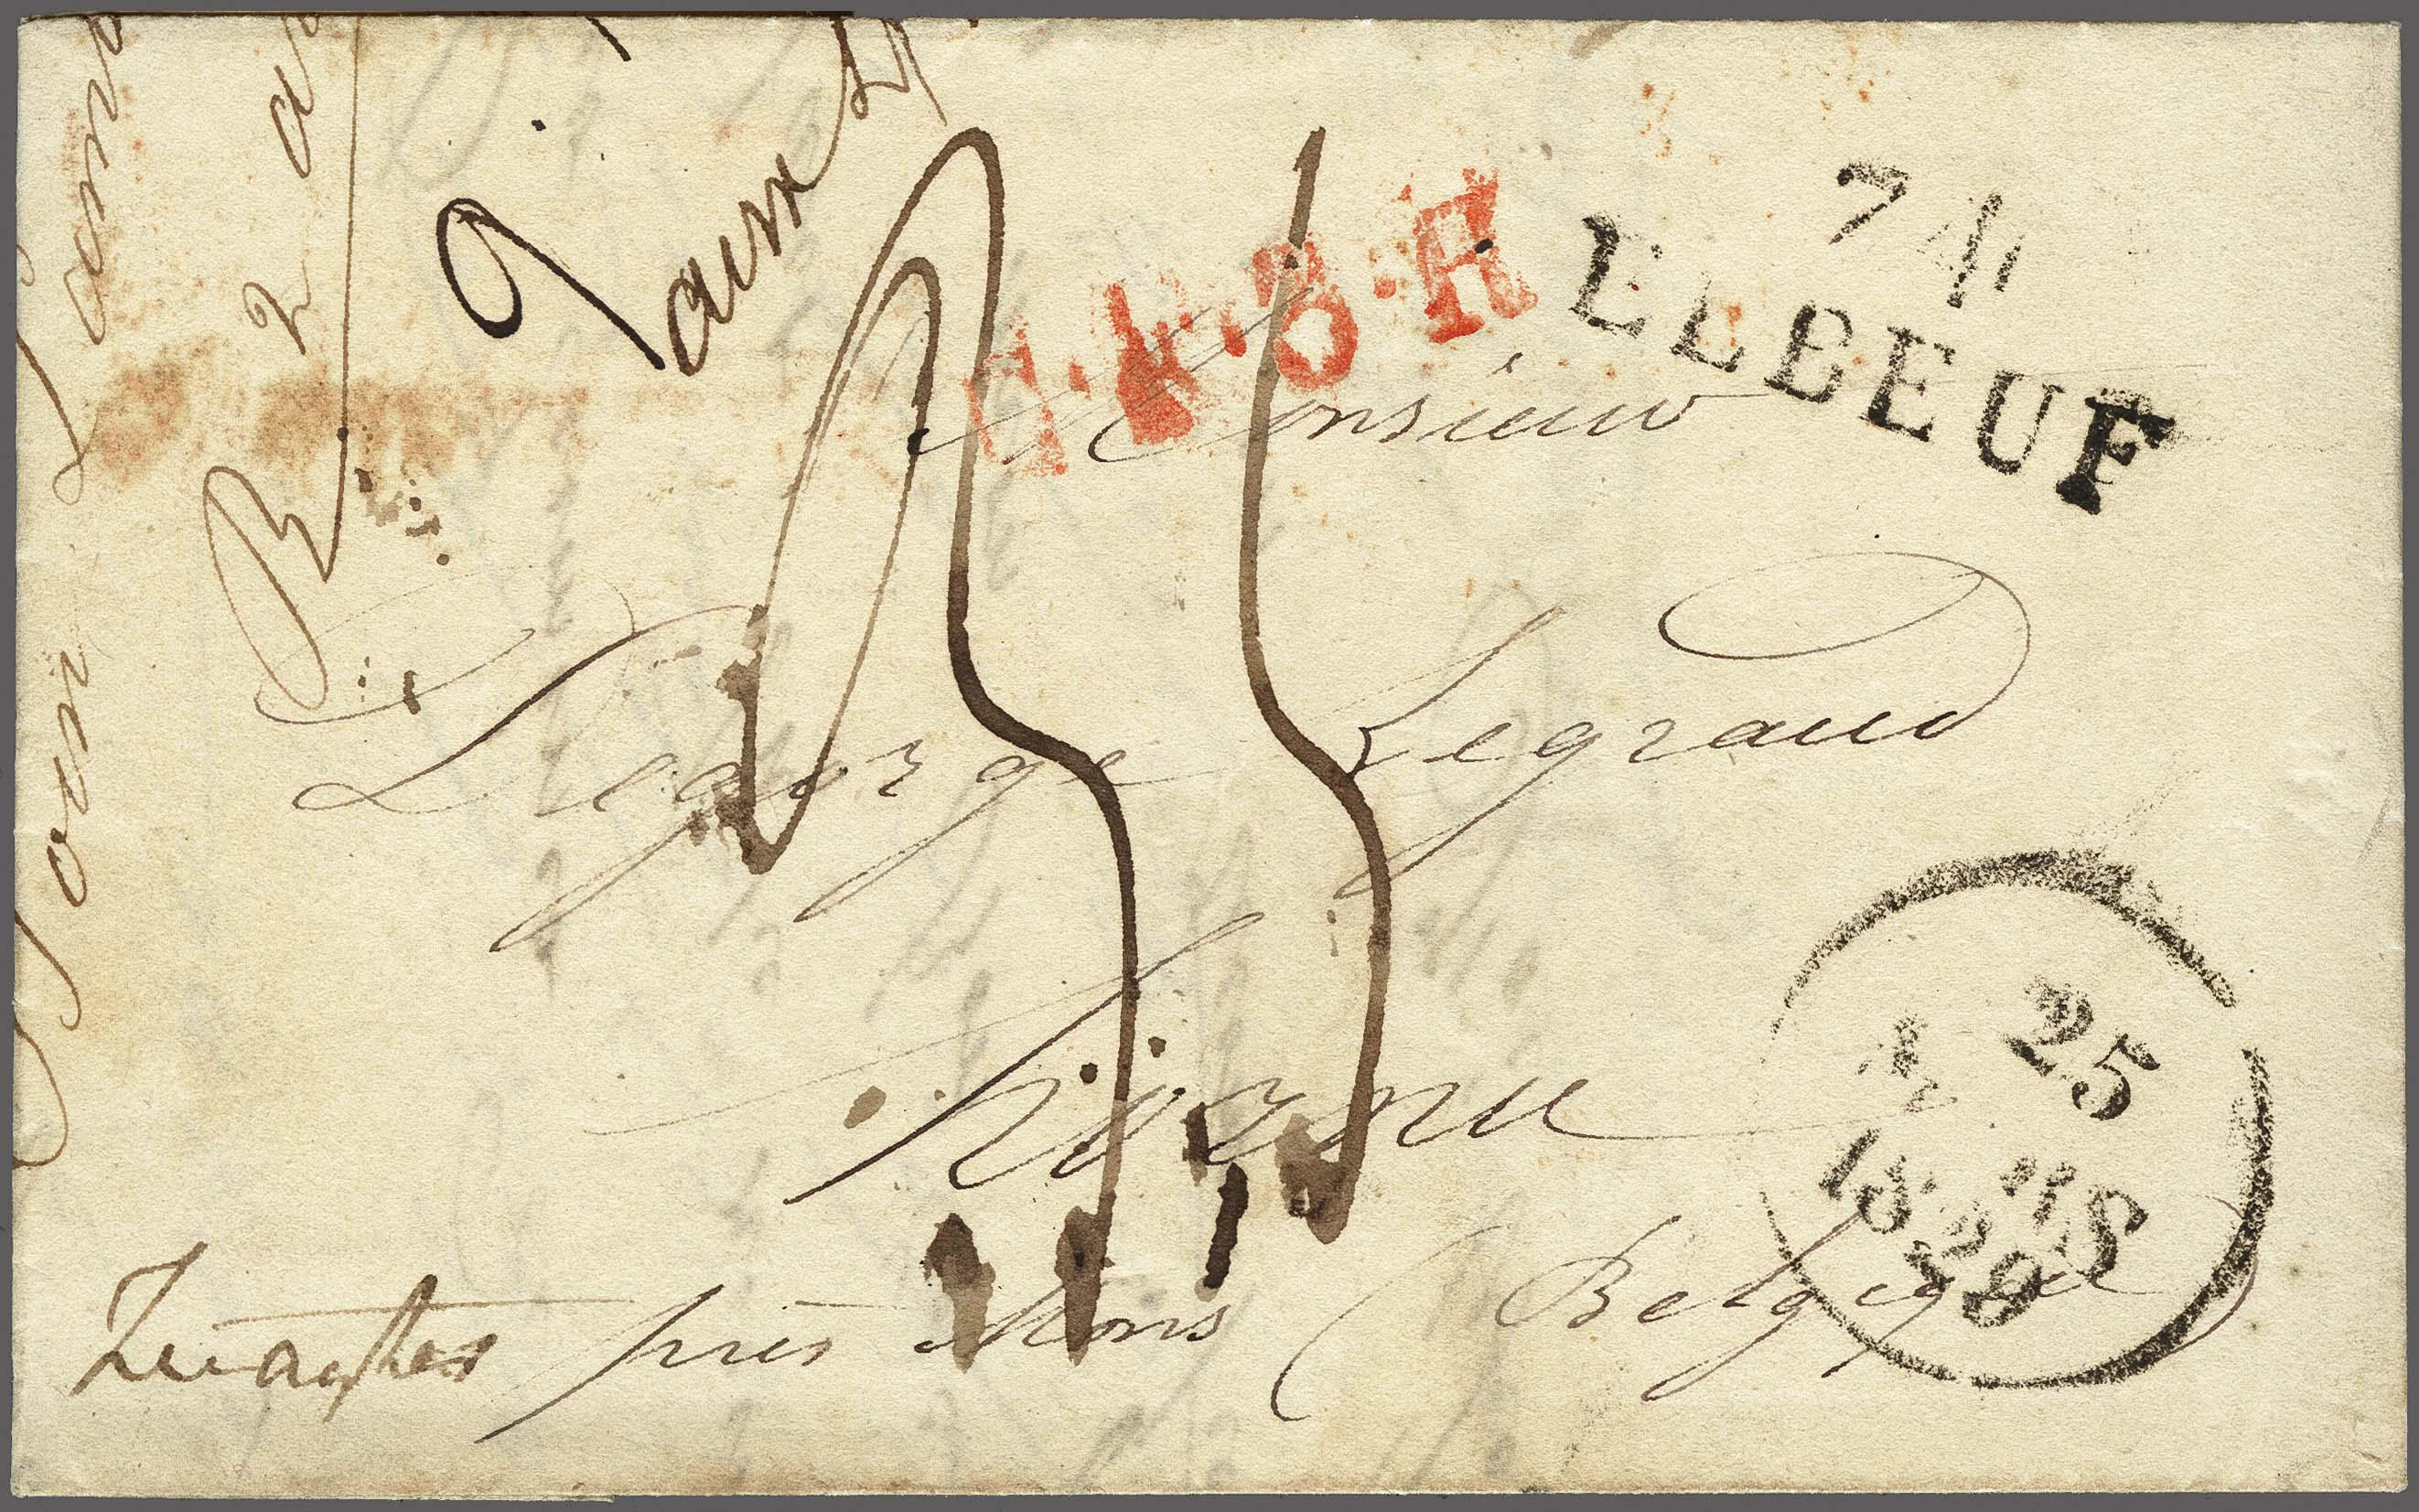 Lot 2384 - Netherlands and former colonies Netherlands -  Corinphila Veilingen Auction 250-253 - Day 3 - Netherlands and former colonies - Single lots & Picture postcards